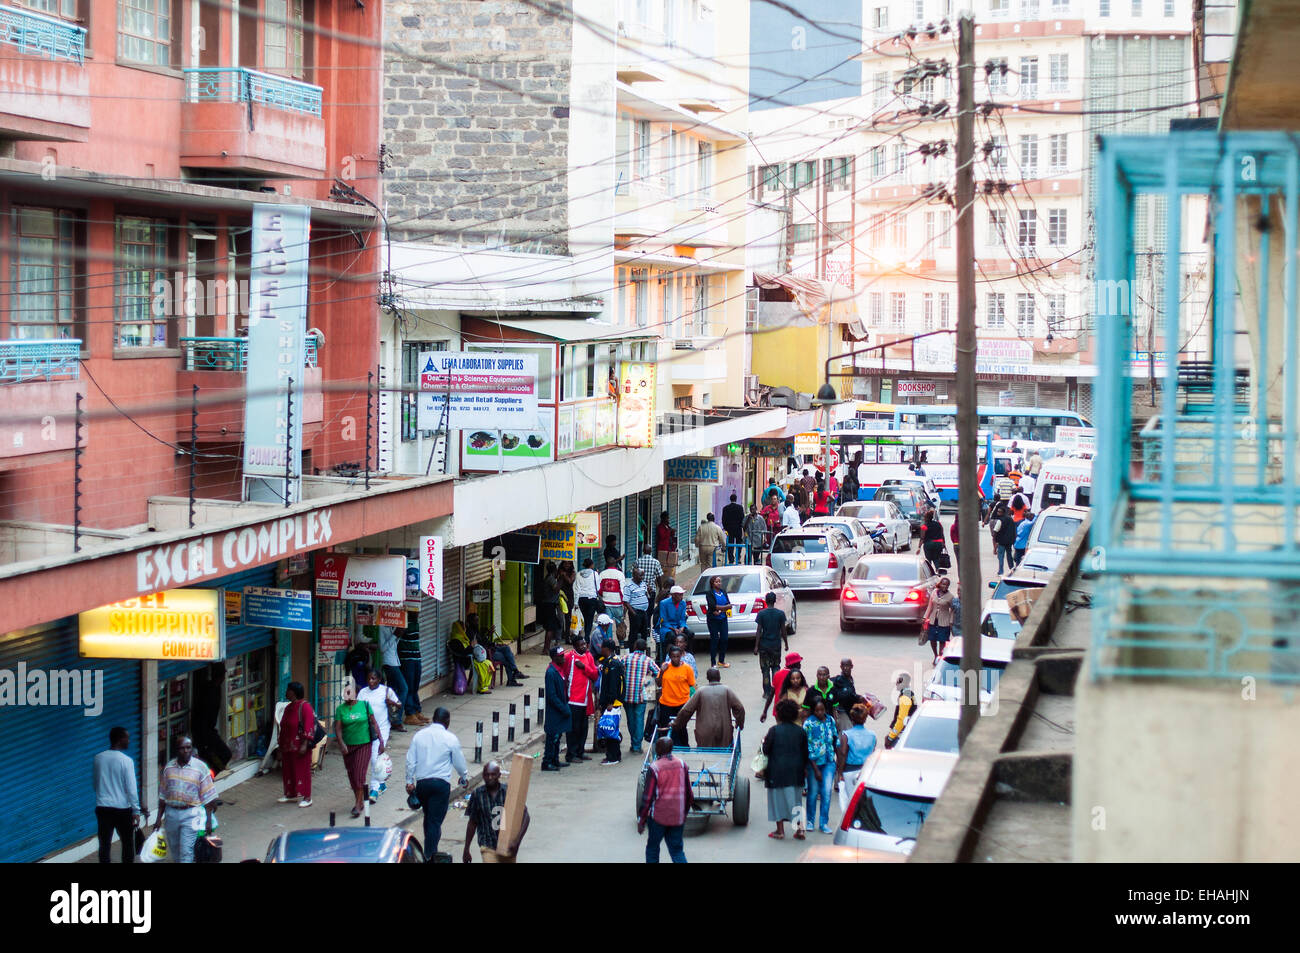 Elevated view of Dubois Street, Downtown Nairobi, Kenya - Stock Image